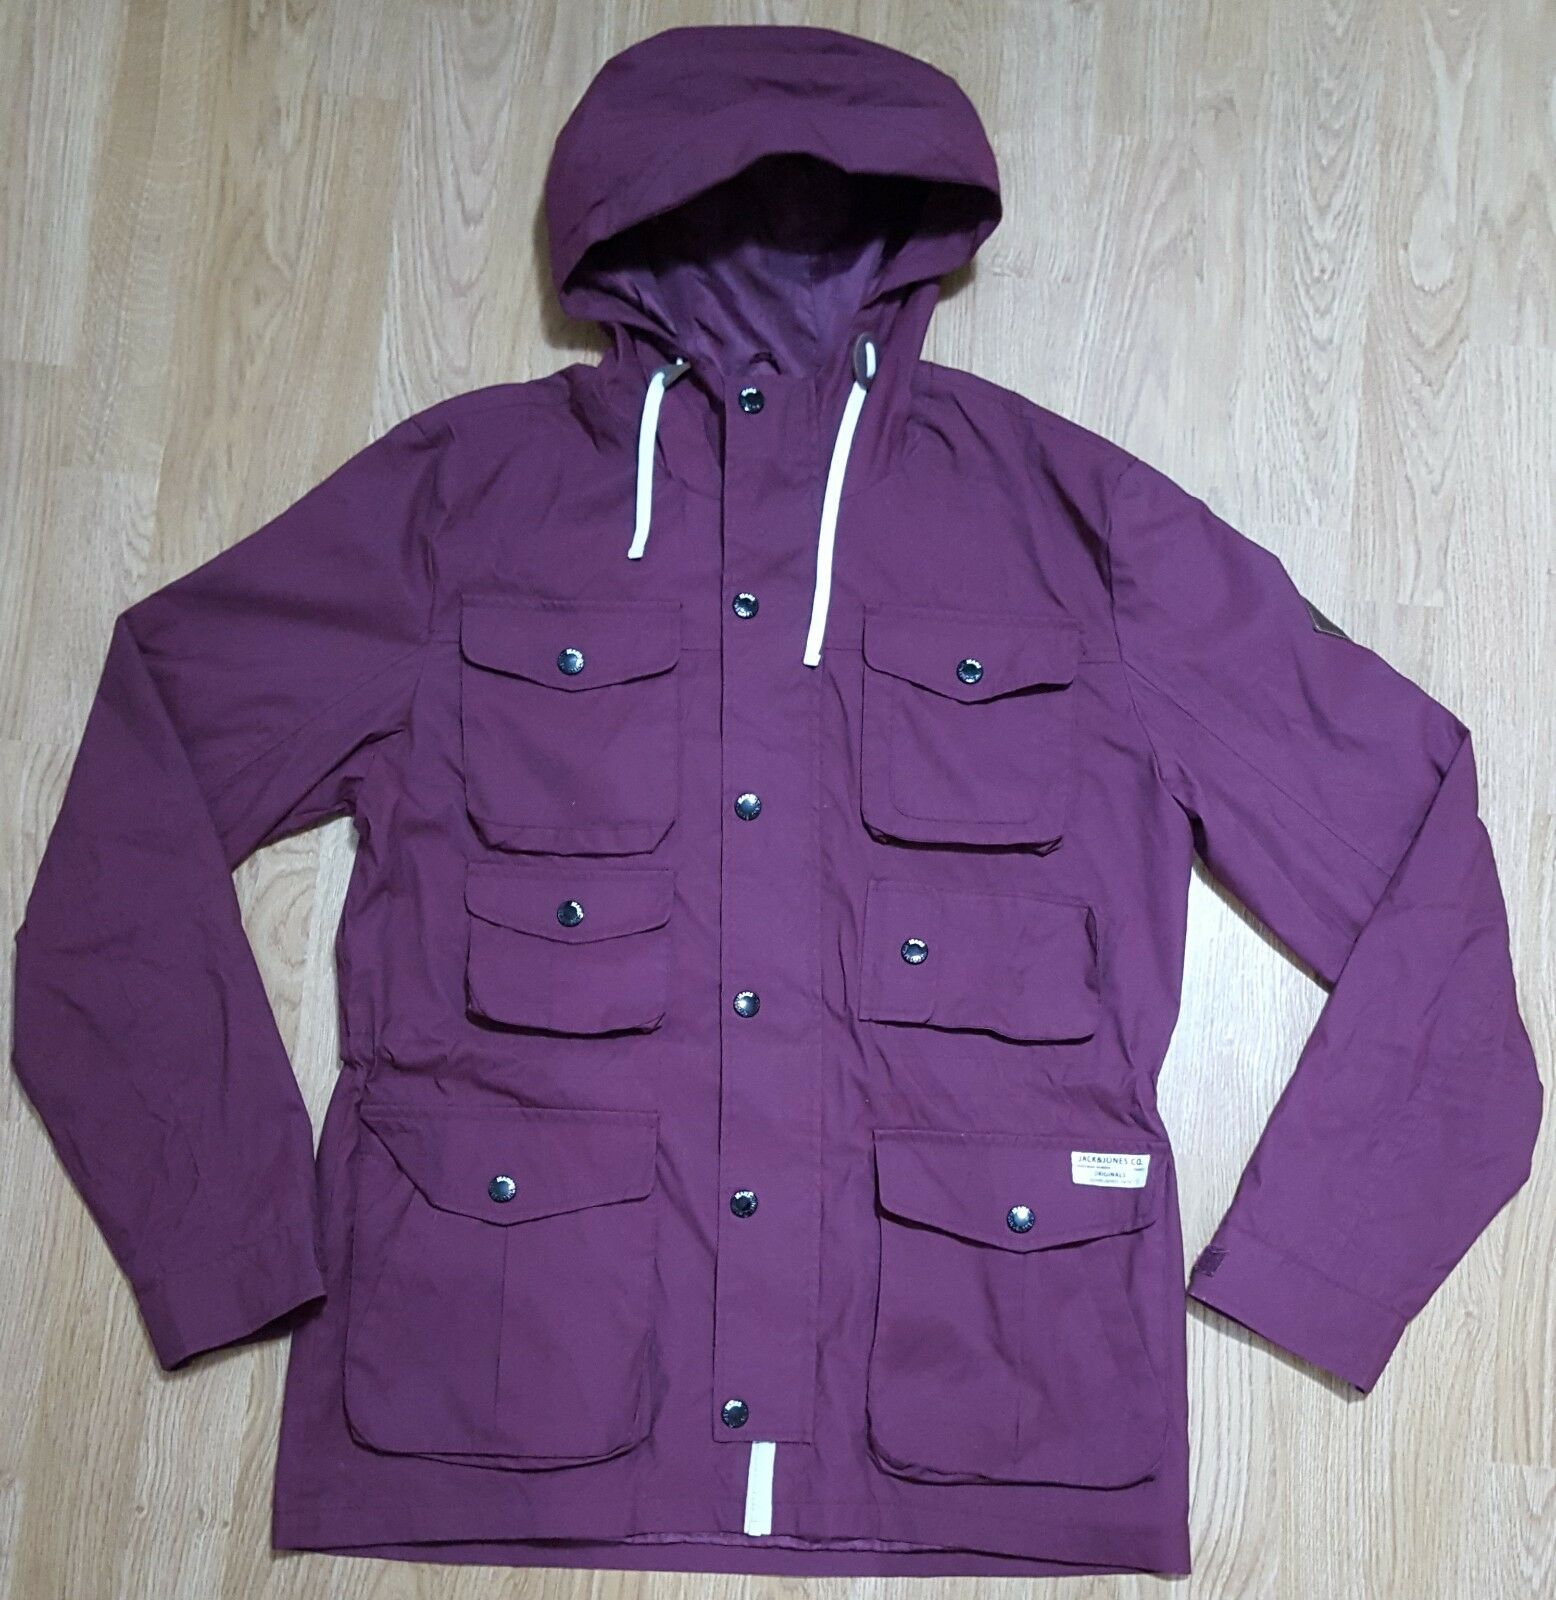 Jack & Jones Denmark jacke With Hood J&J 75 Light Weight rot Größe L